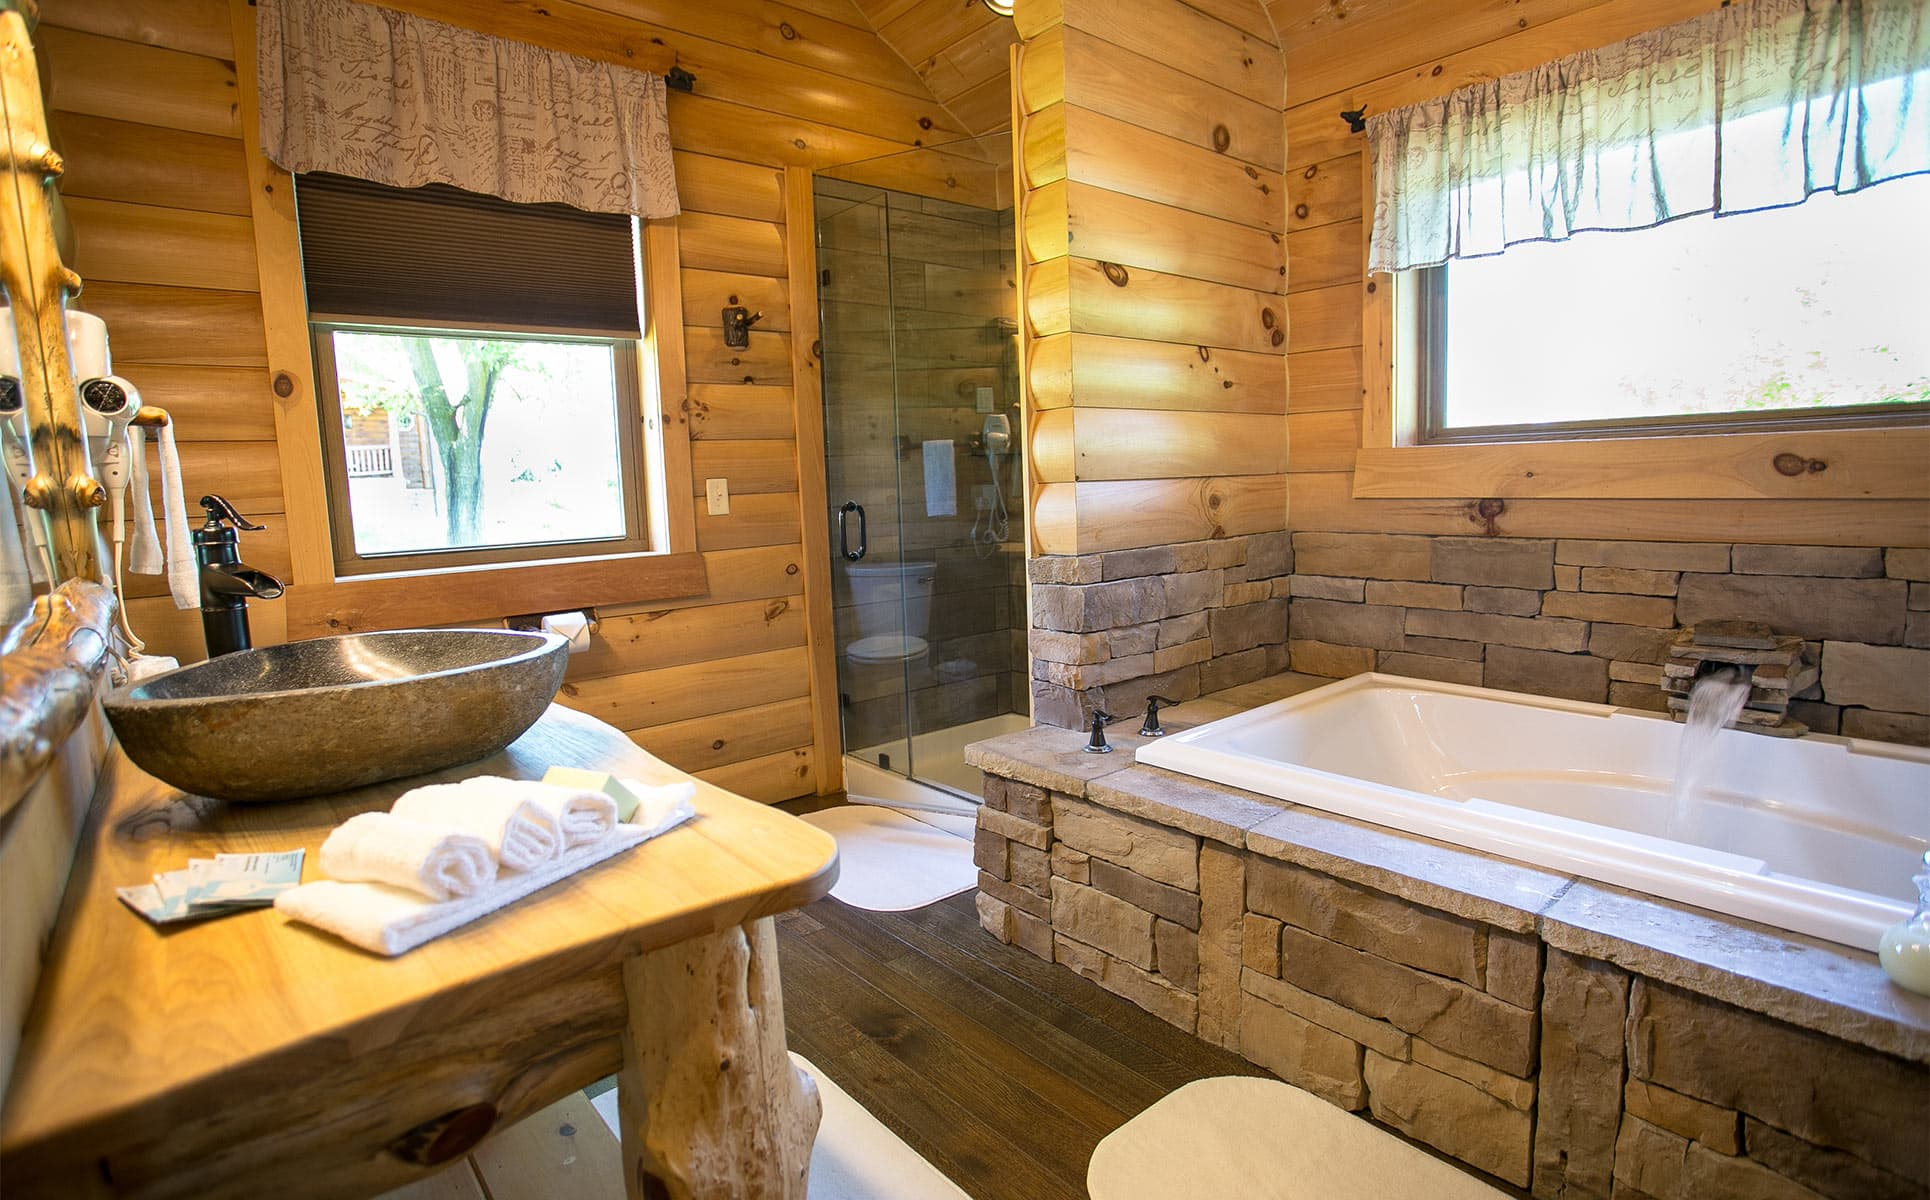 Bathroom with 2-person stone jetted tub